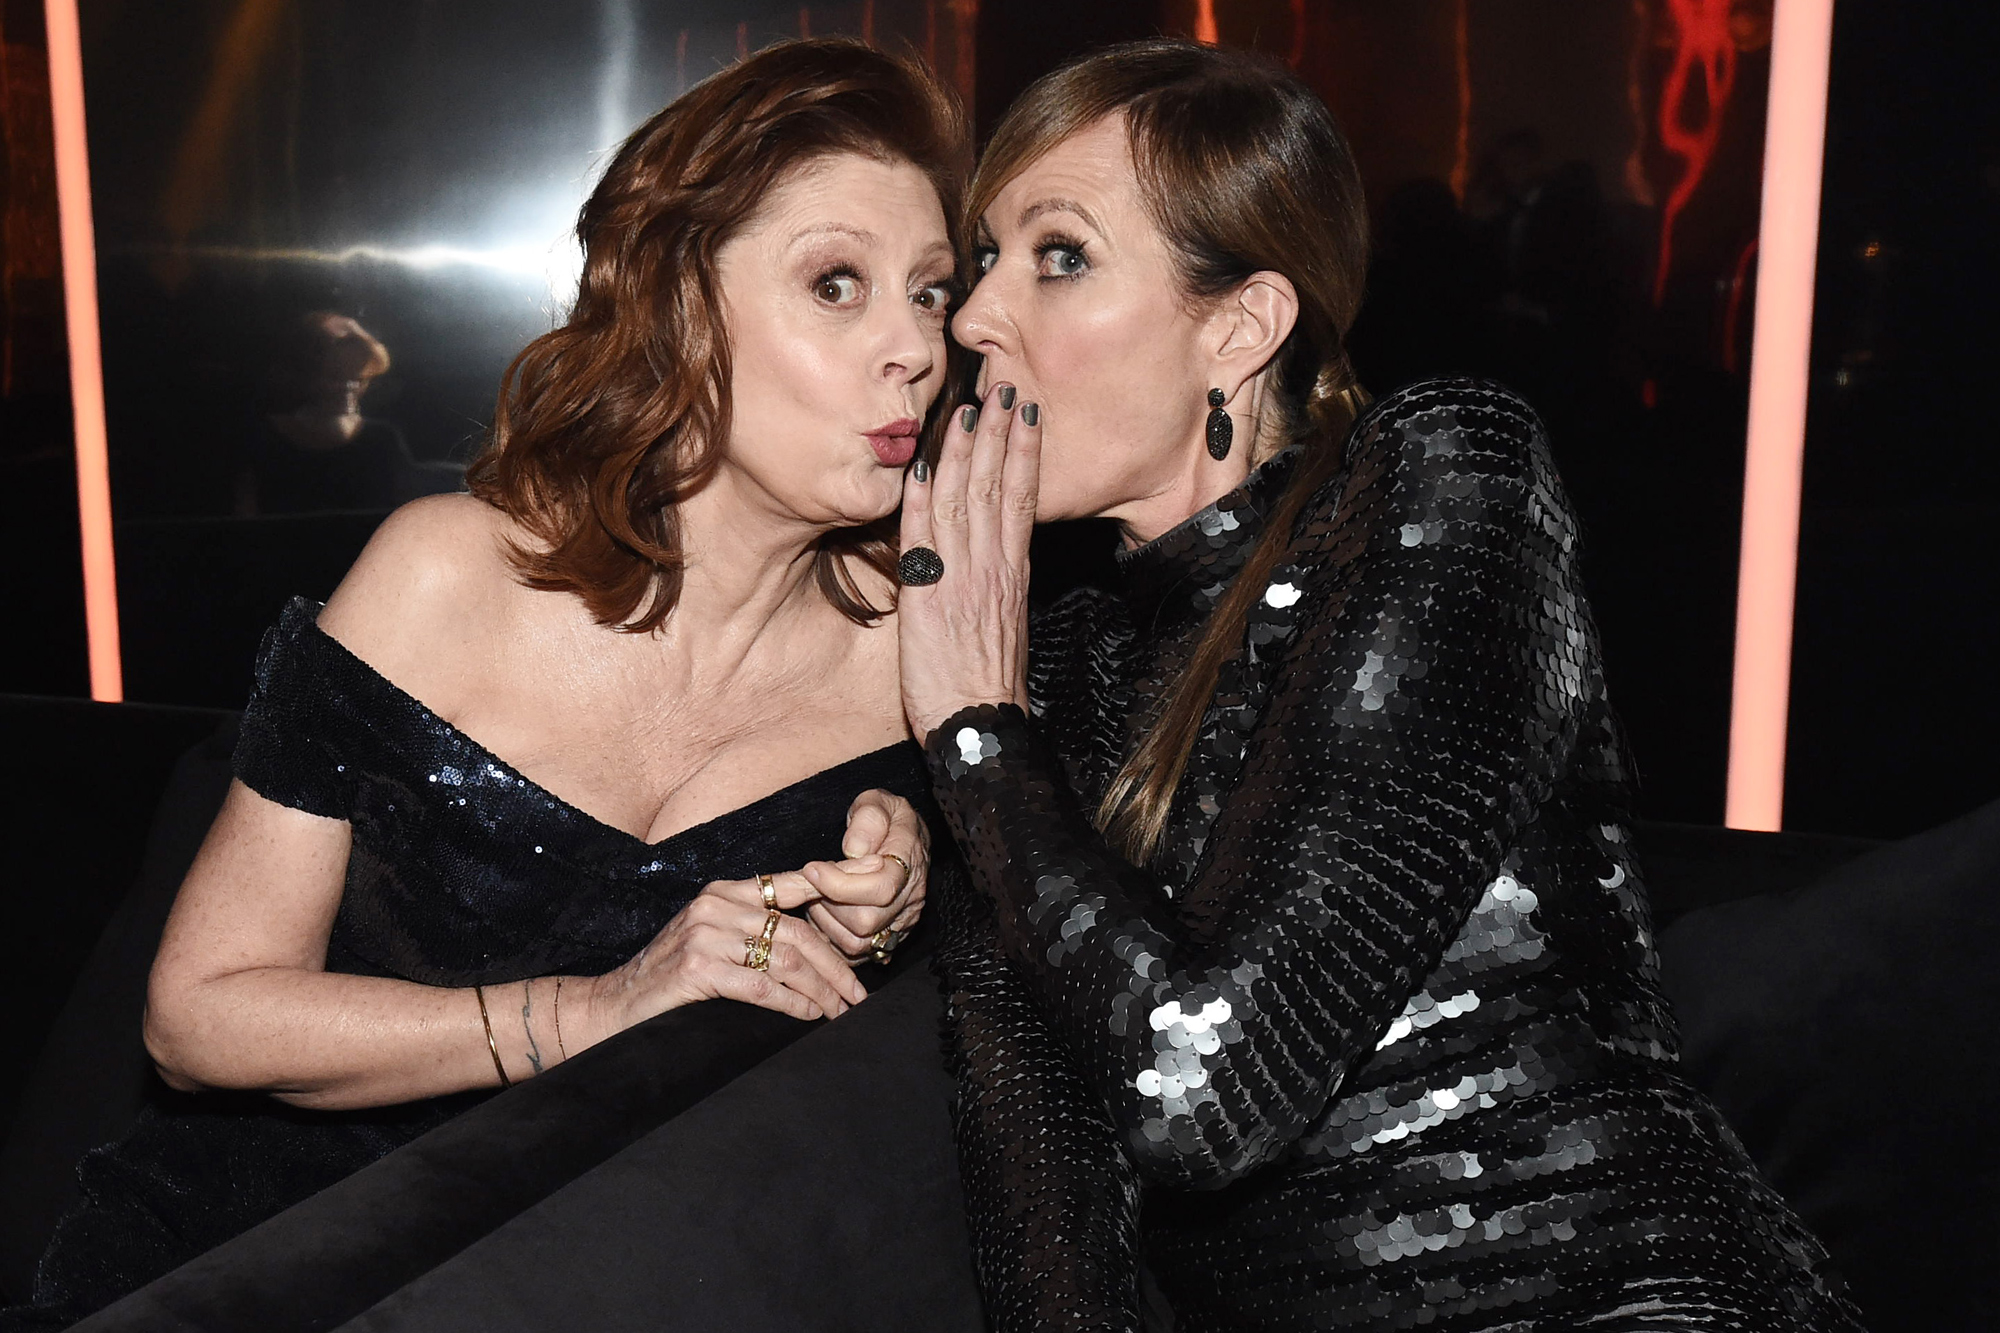 People and EIF's Annual Screen Actors Guild Awards Gala sponsored by TNT at the Shrine Auditorium, Los Angeles, CA, USA - 21 Jan 2018